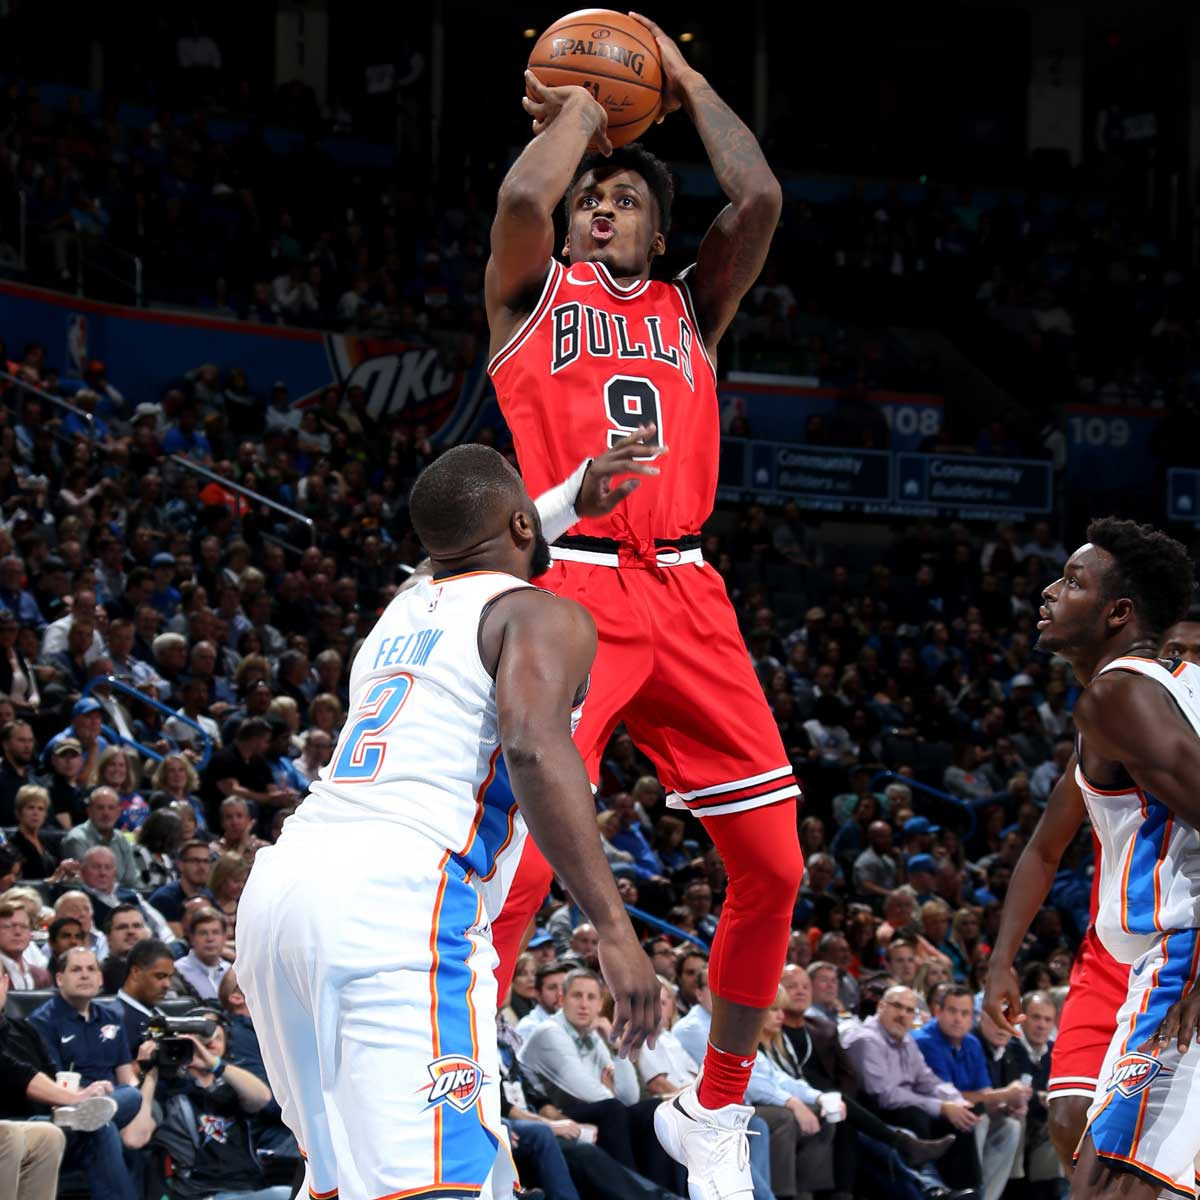 Antonio Blakeney #9 of the Chicago Bulls shoots the ball during the game against the Oklahoma City Thunder on November 15, 2017 at Chesapeake Energy Arena in Oklahoma City, Oklahoma.